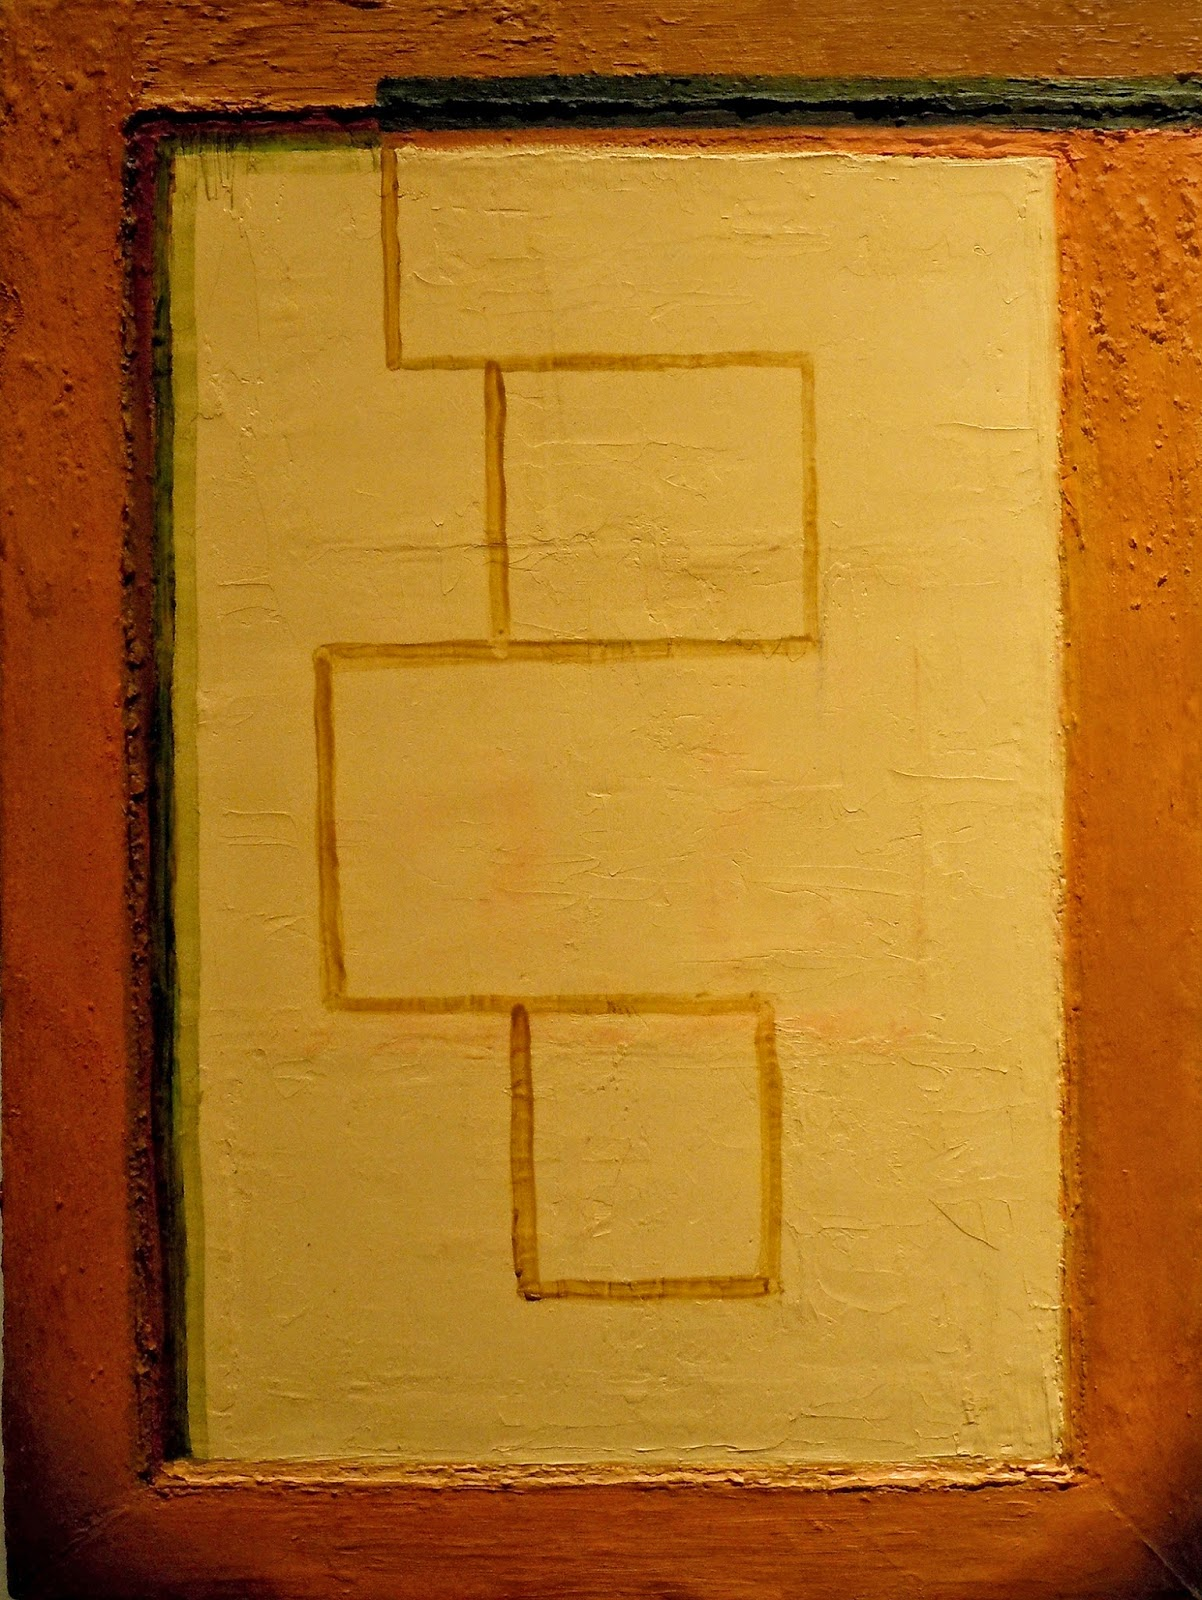 Fred Valentine, Abstract Picture #22, Oil On Canvas, 9 X 12 Inches, 2013  (courtesy Of The Artist)